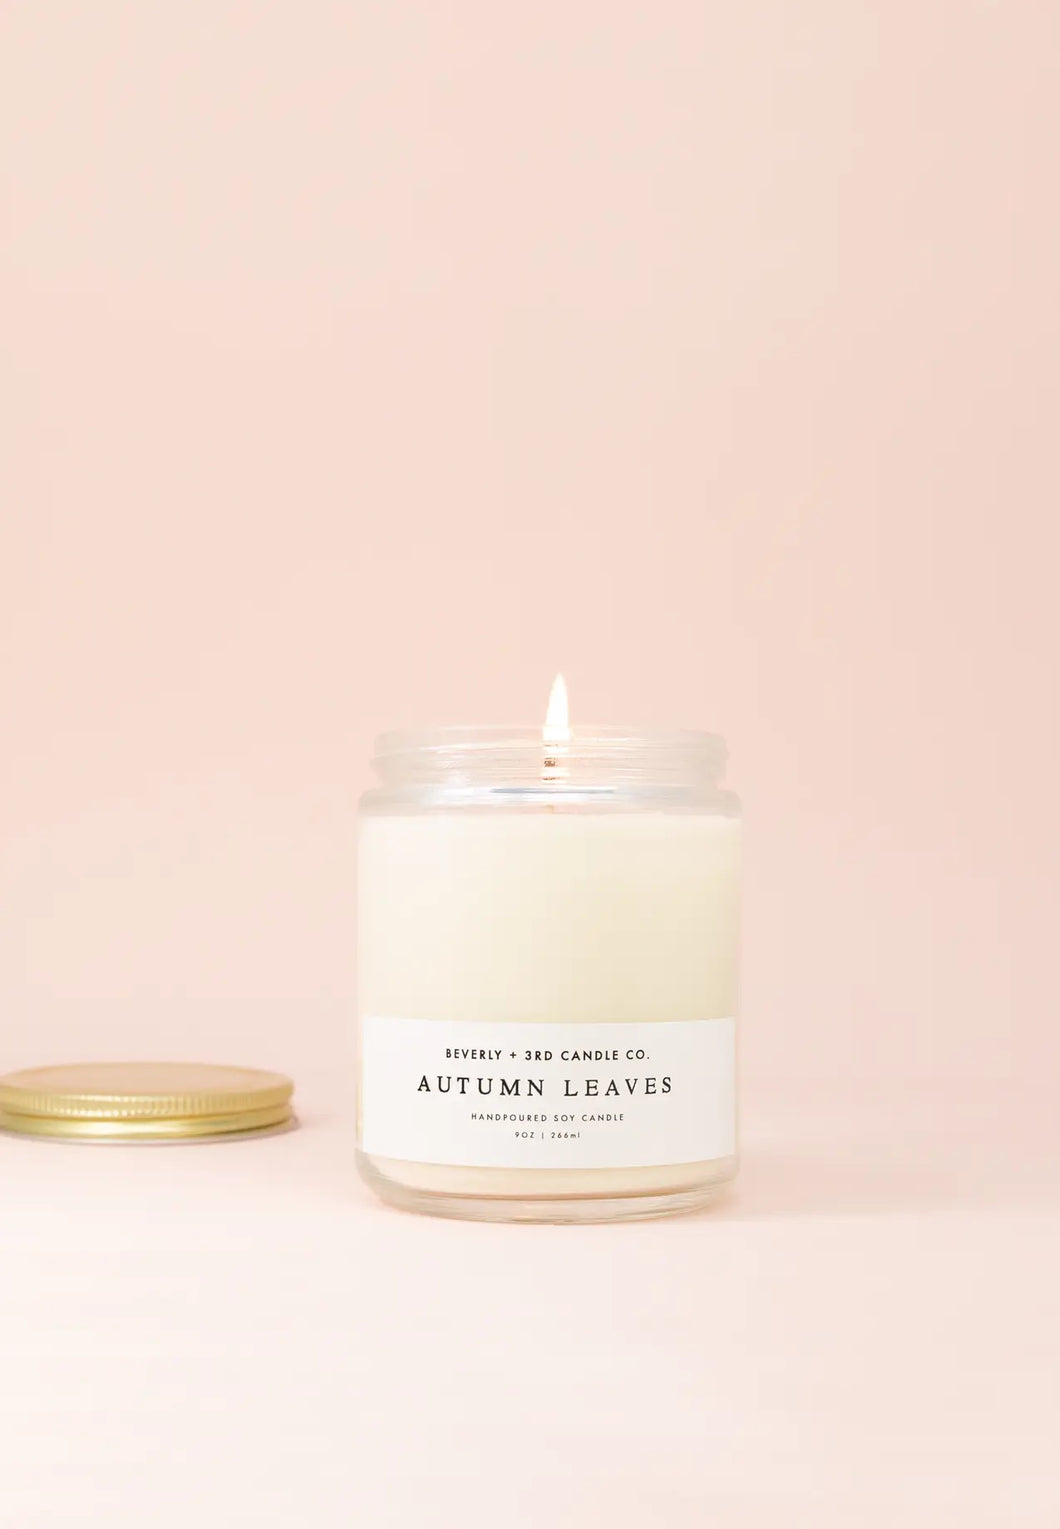 Beverly & 3rd Candle Co Autumn Leaves 9 oz Soy Candle